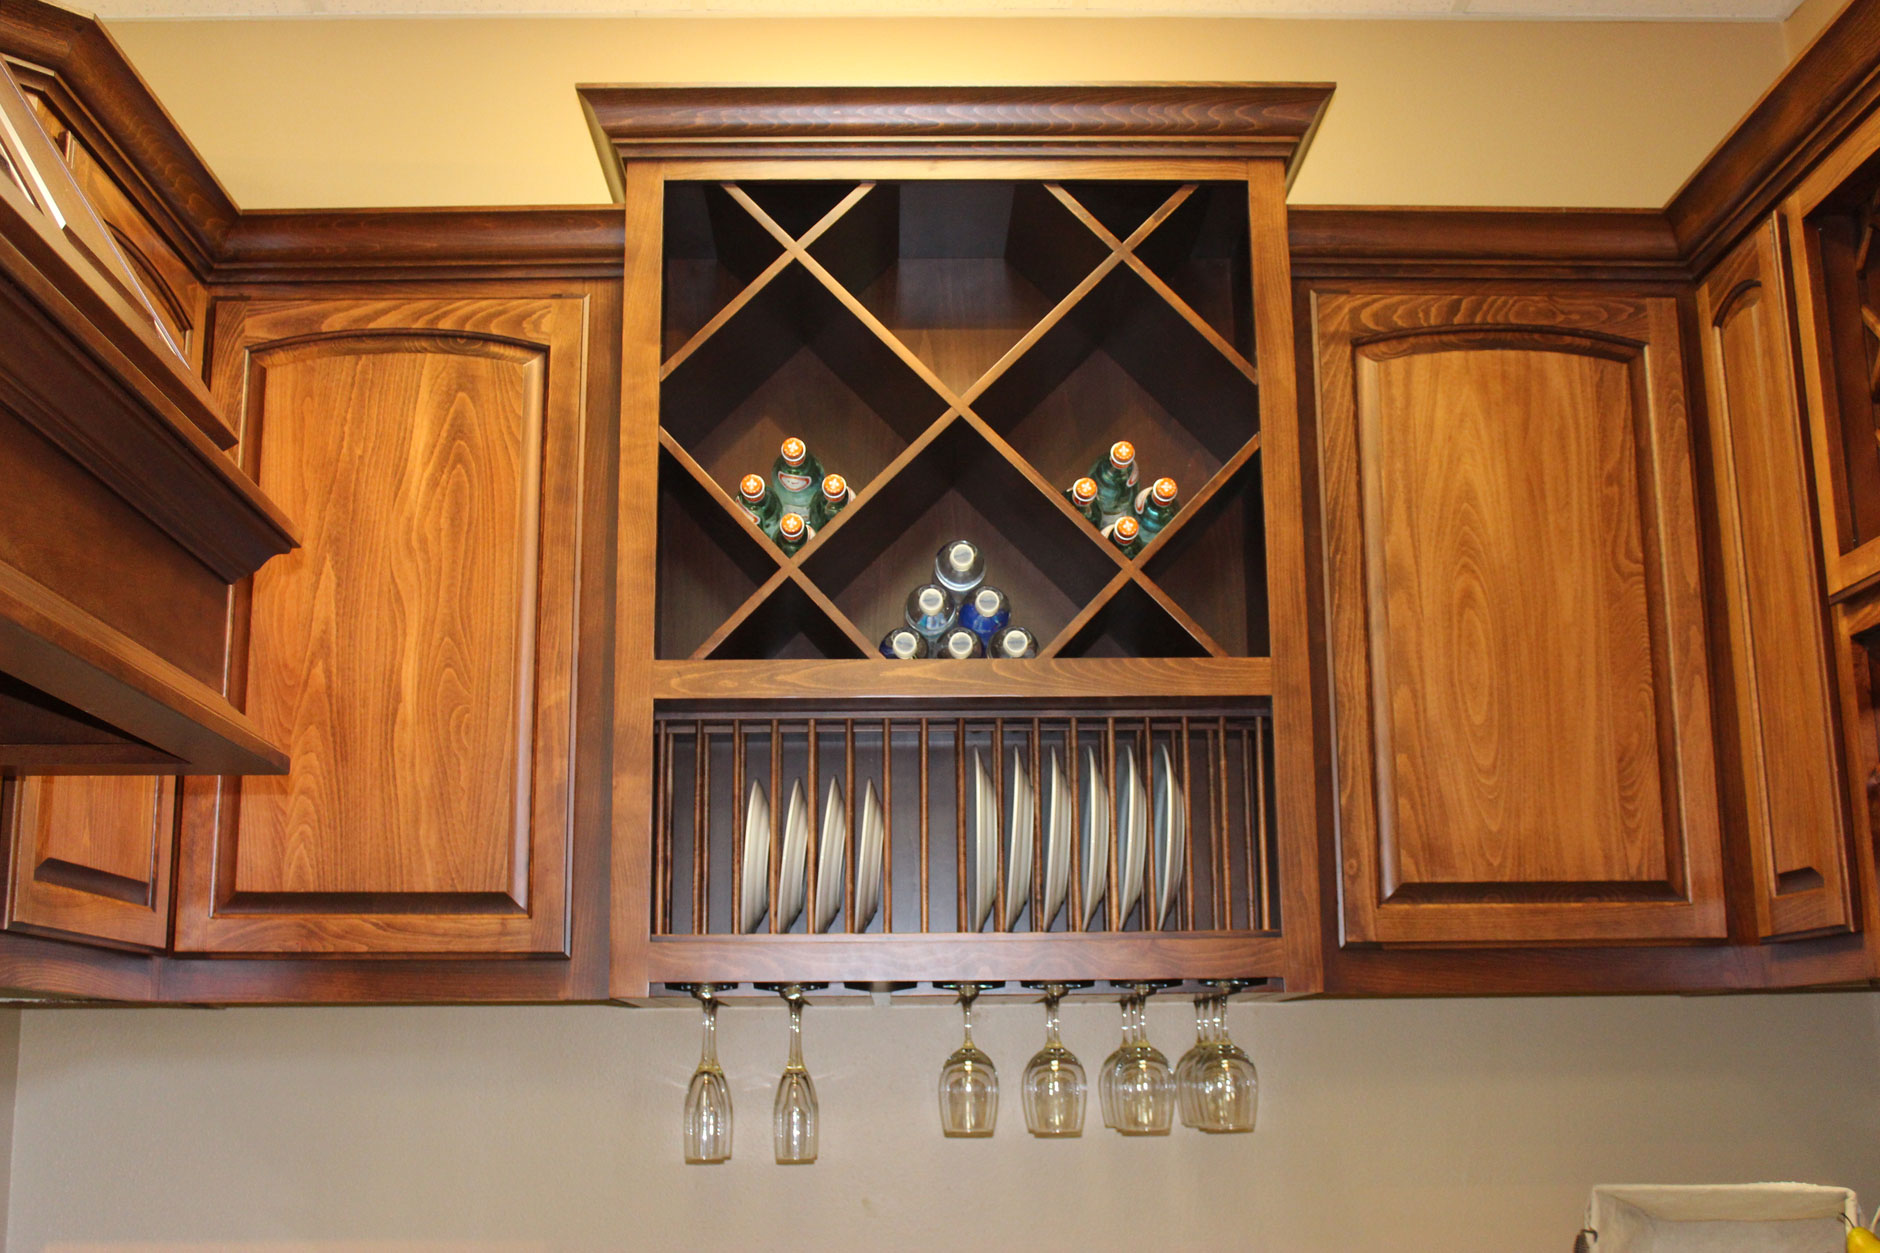 Custom wood plate racks, stemware racks and big x wine cubes